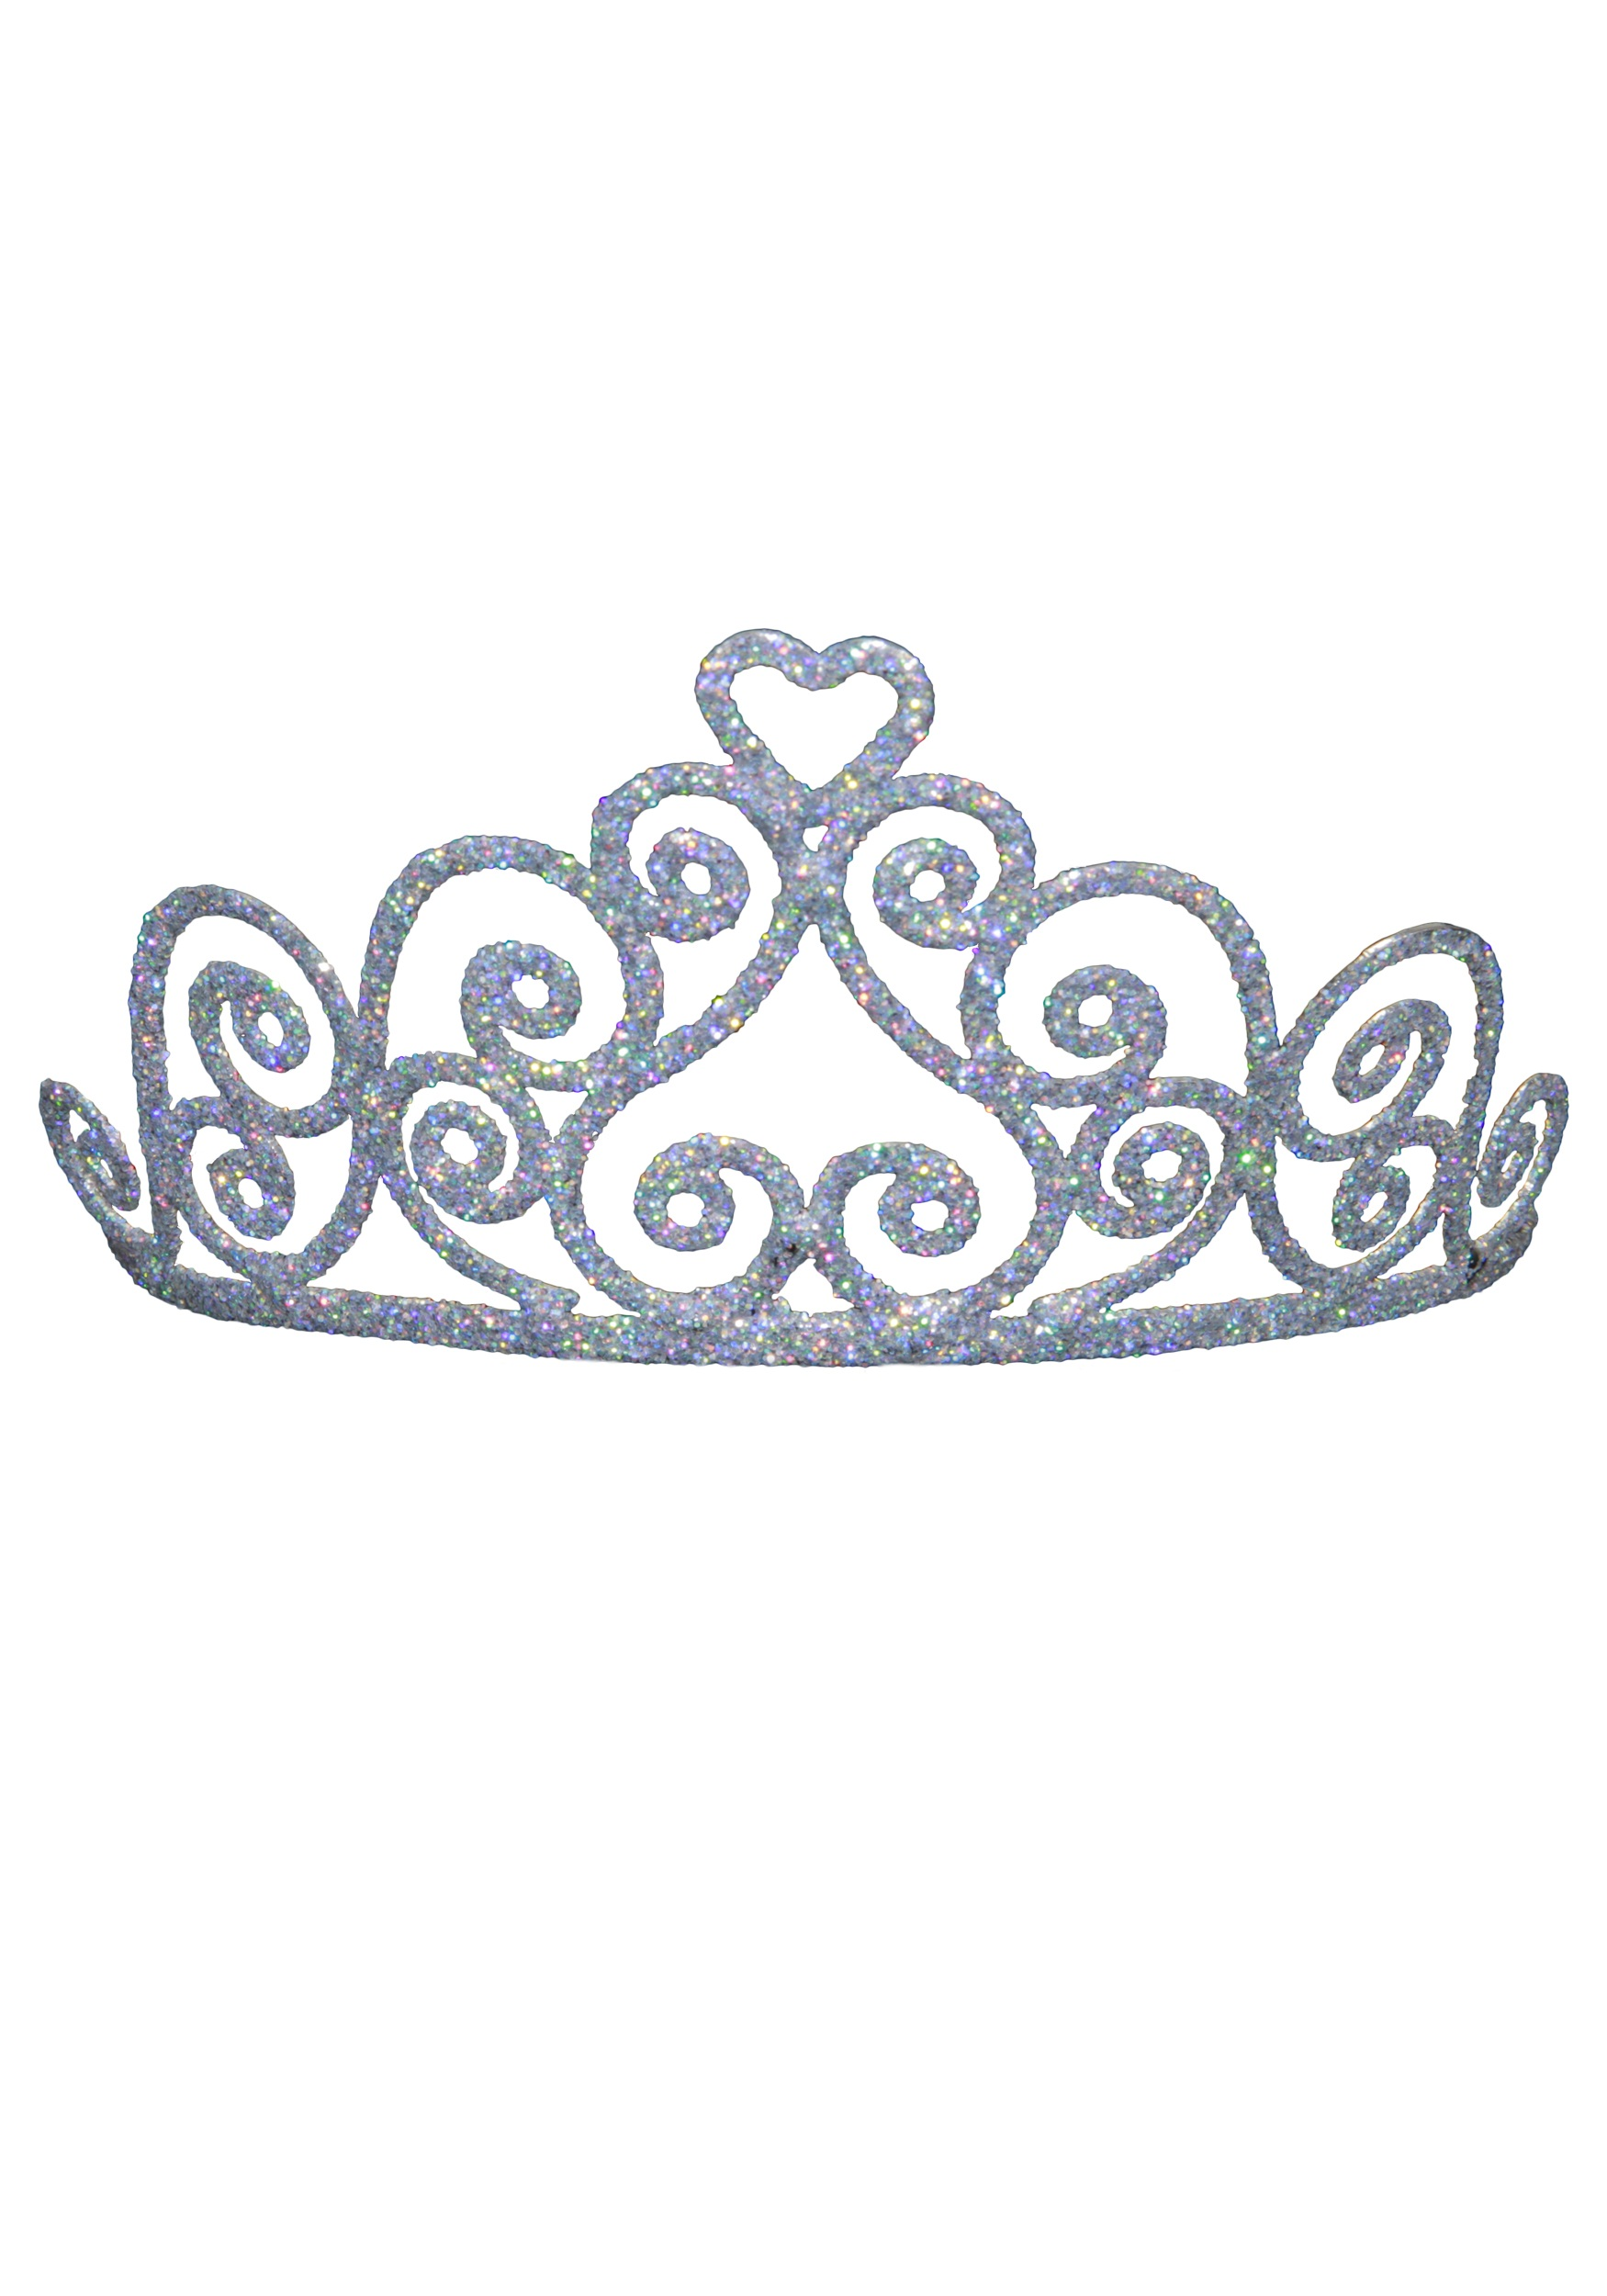 Tiara pink queen crown clip art free clipart images 3.